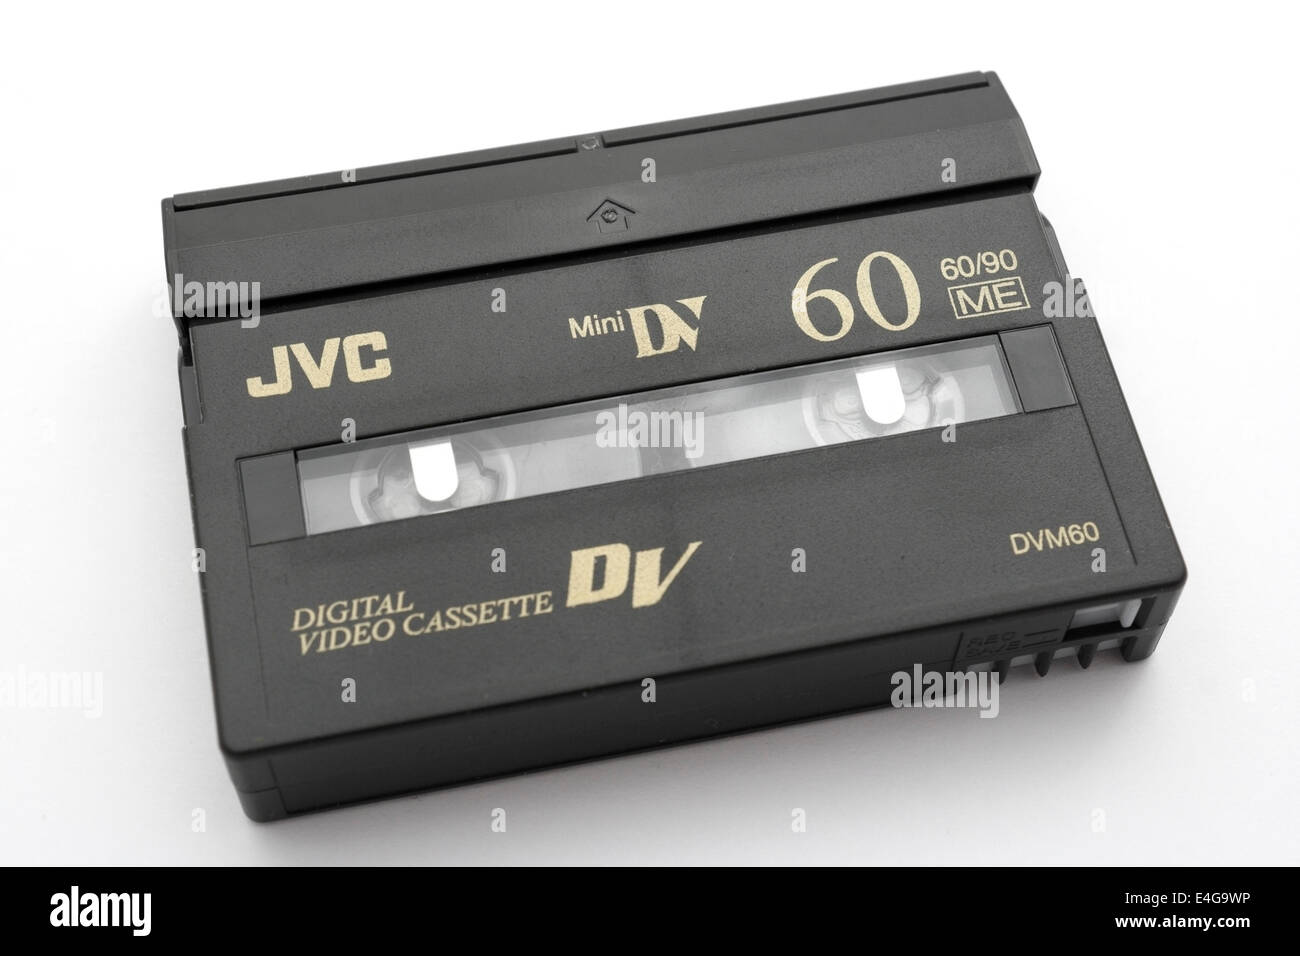 Mini Dv Digital Video Cassette By Jvc Stock Photo